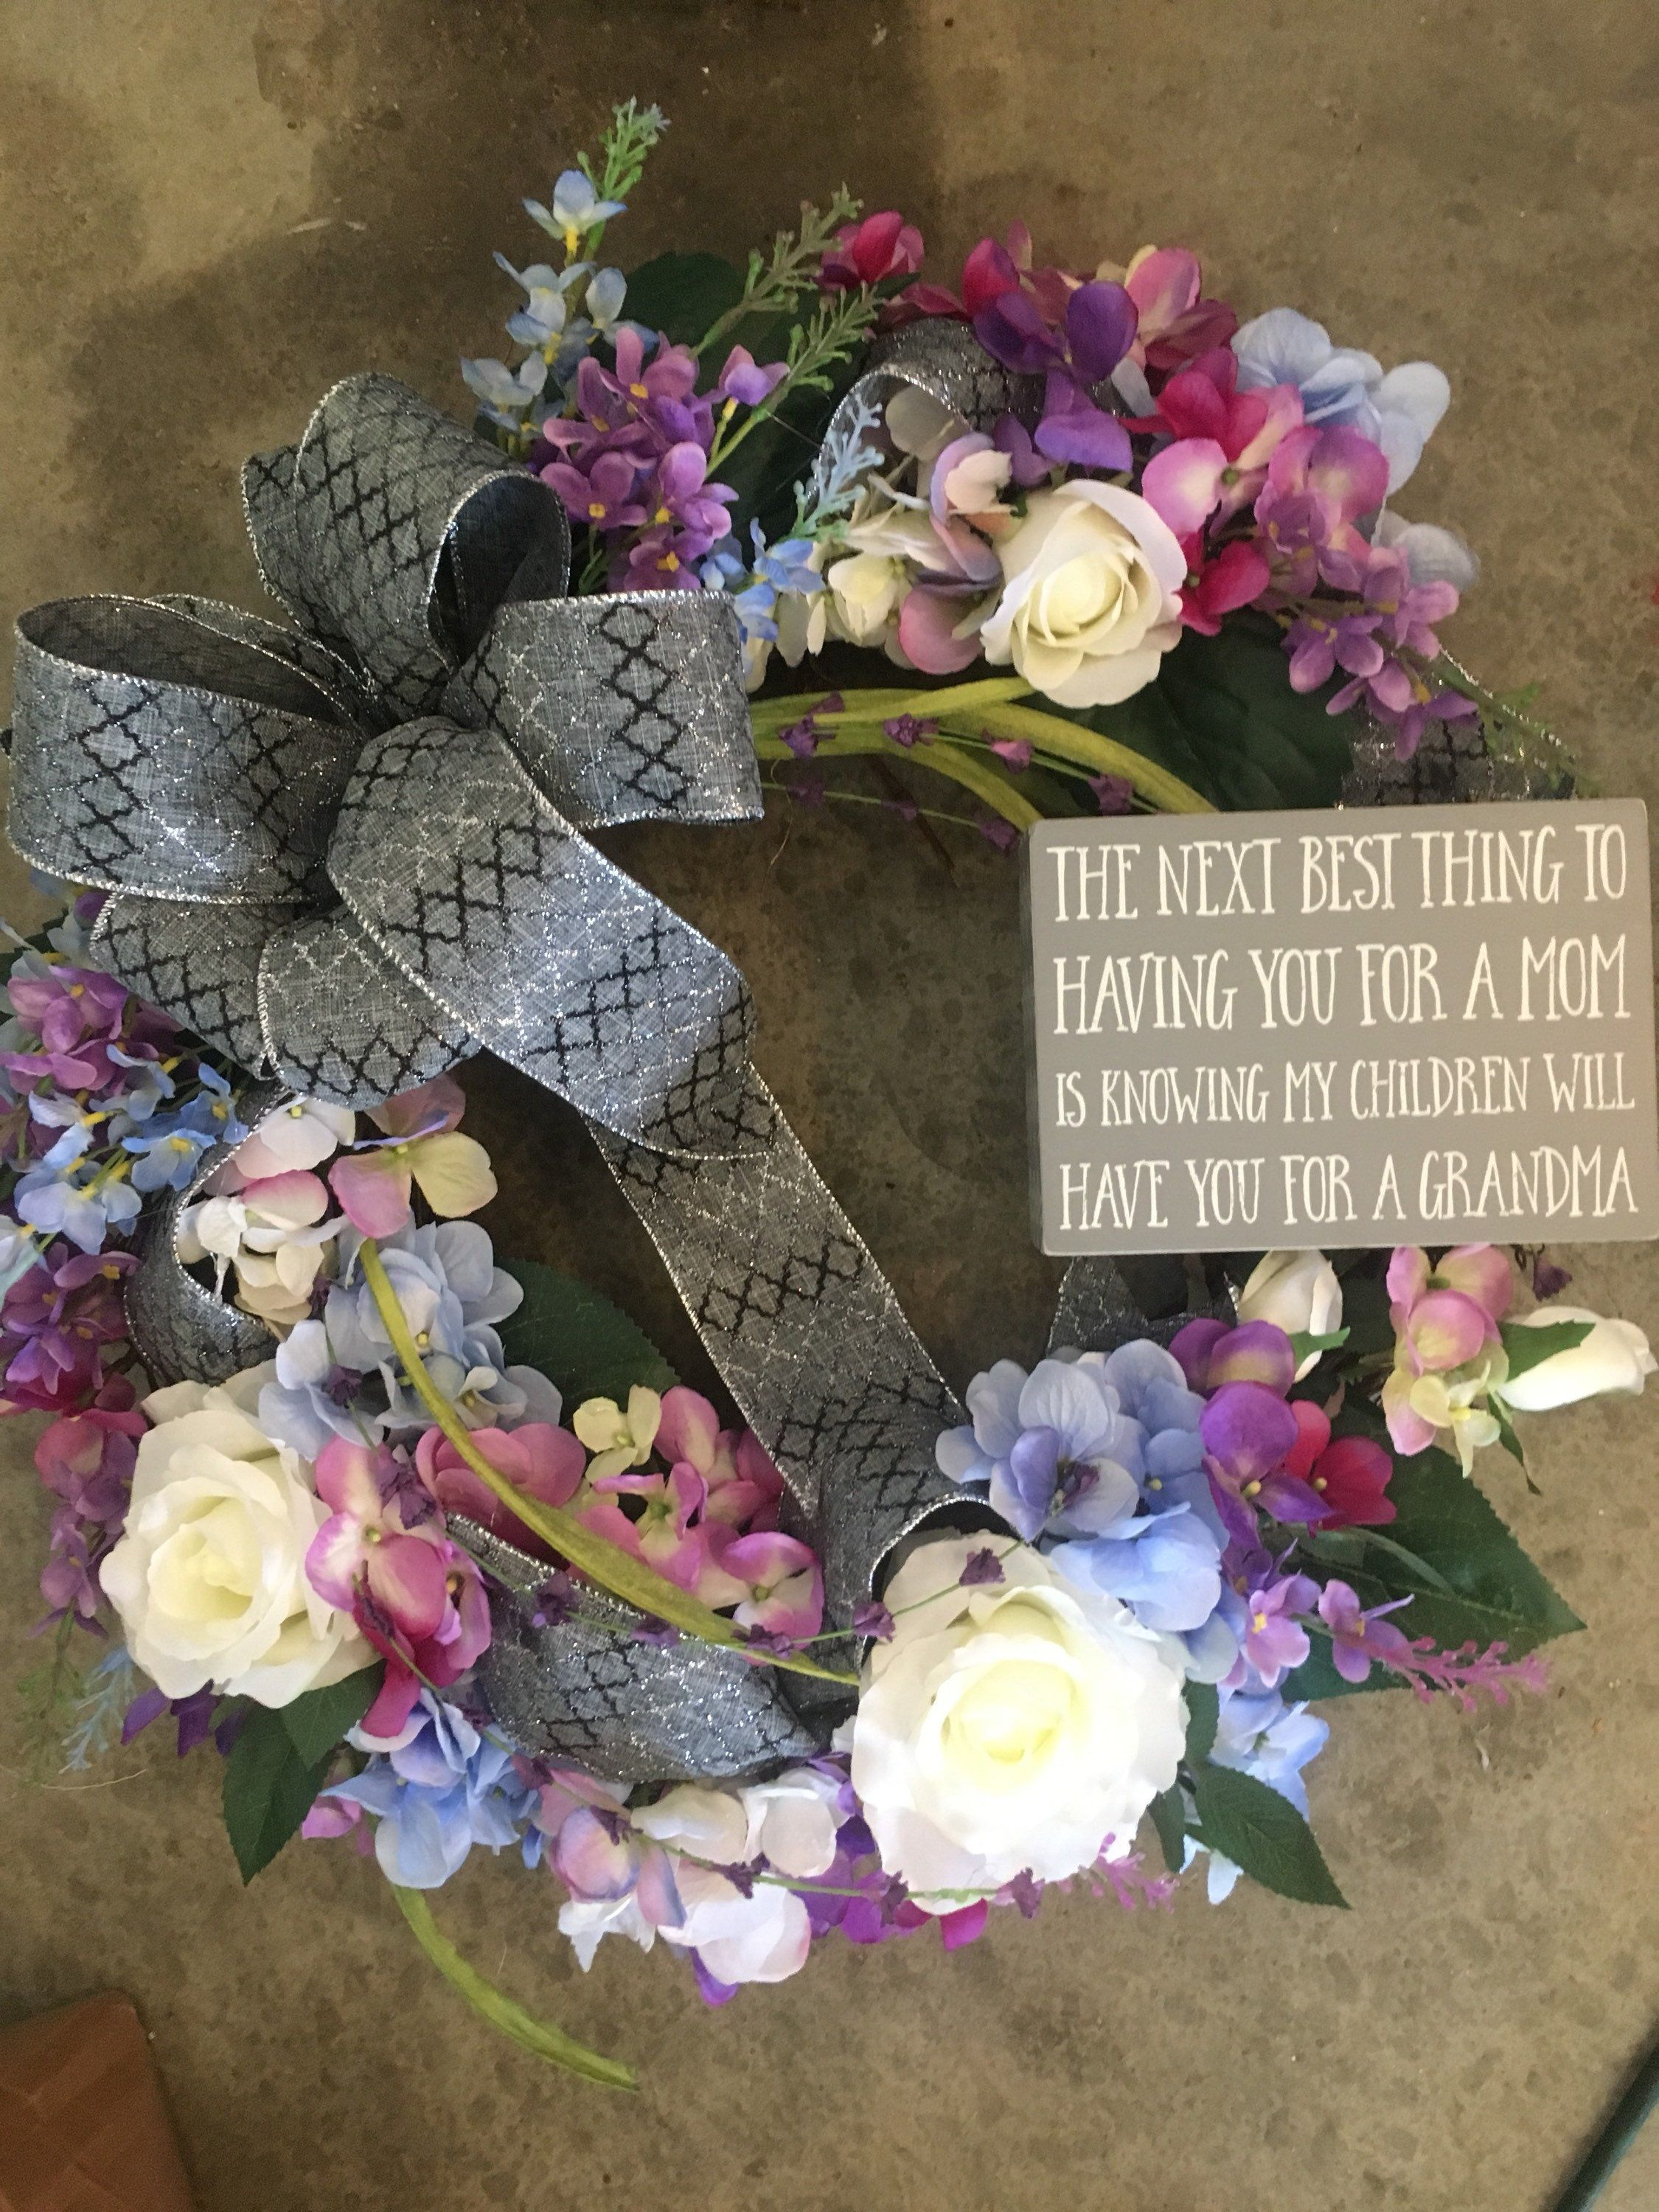 Photo of Grey Floral Grapevine Wreath, Grandmother Gifts, Floral Grapevine Wreath, Mother's Day Wreath, Grandma Floral Grapevine Wreath